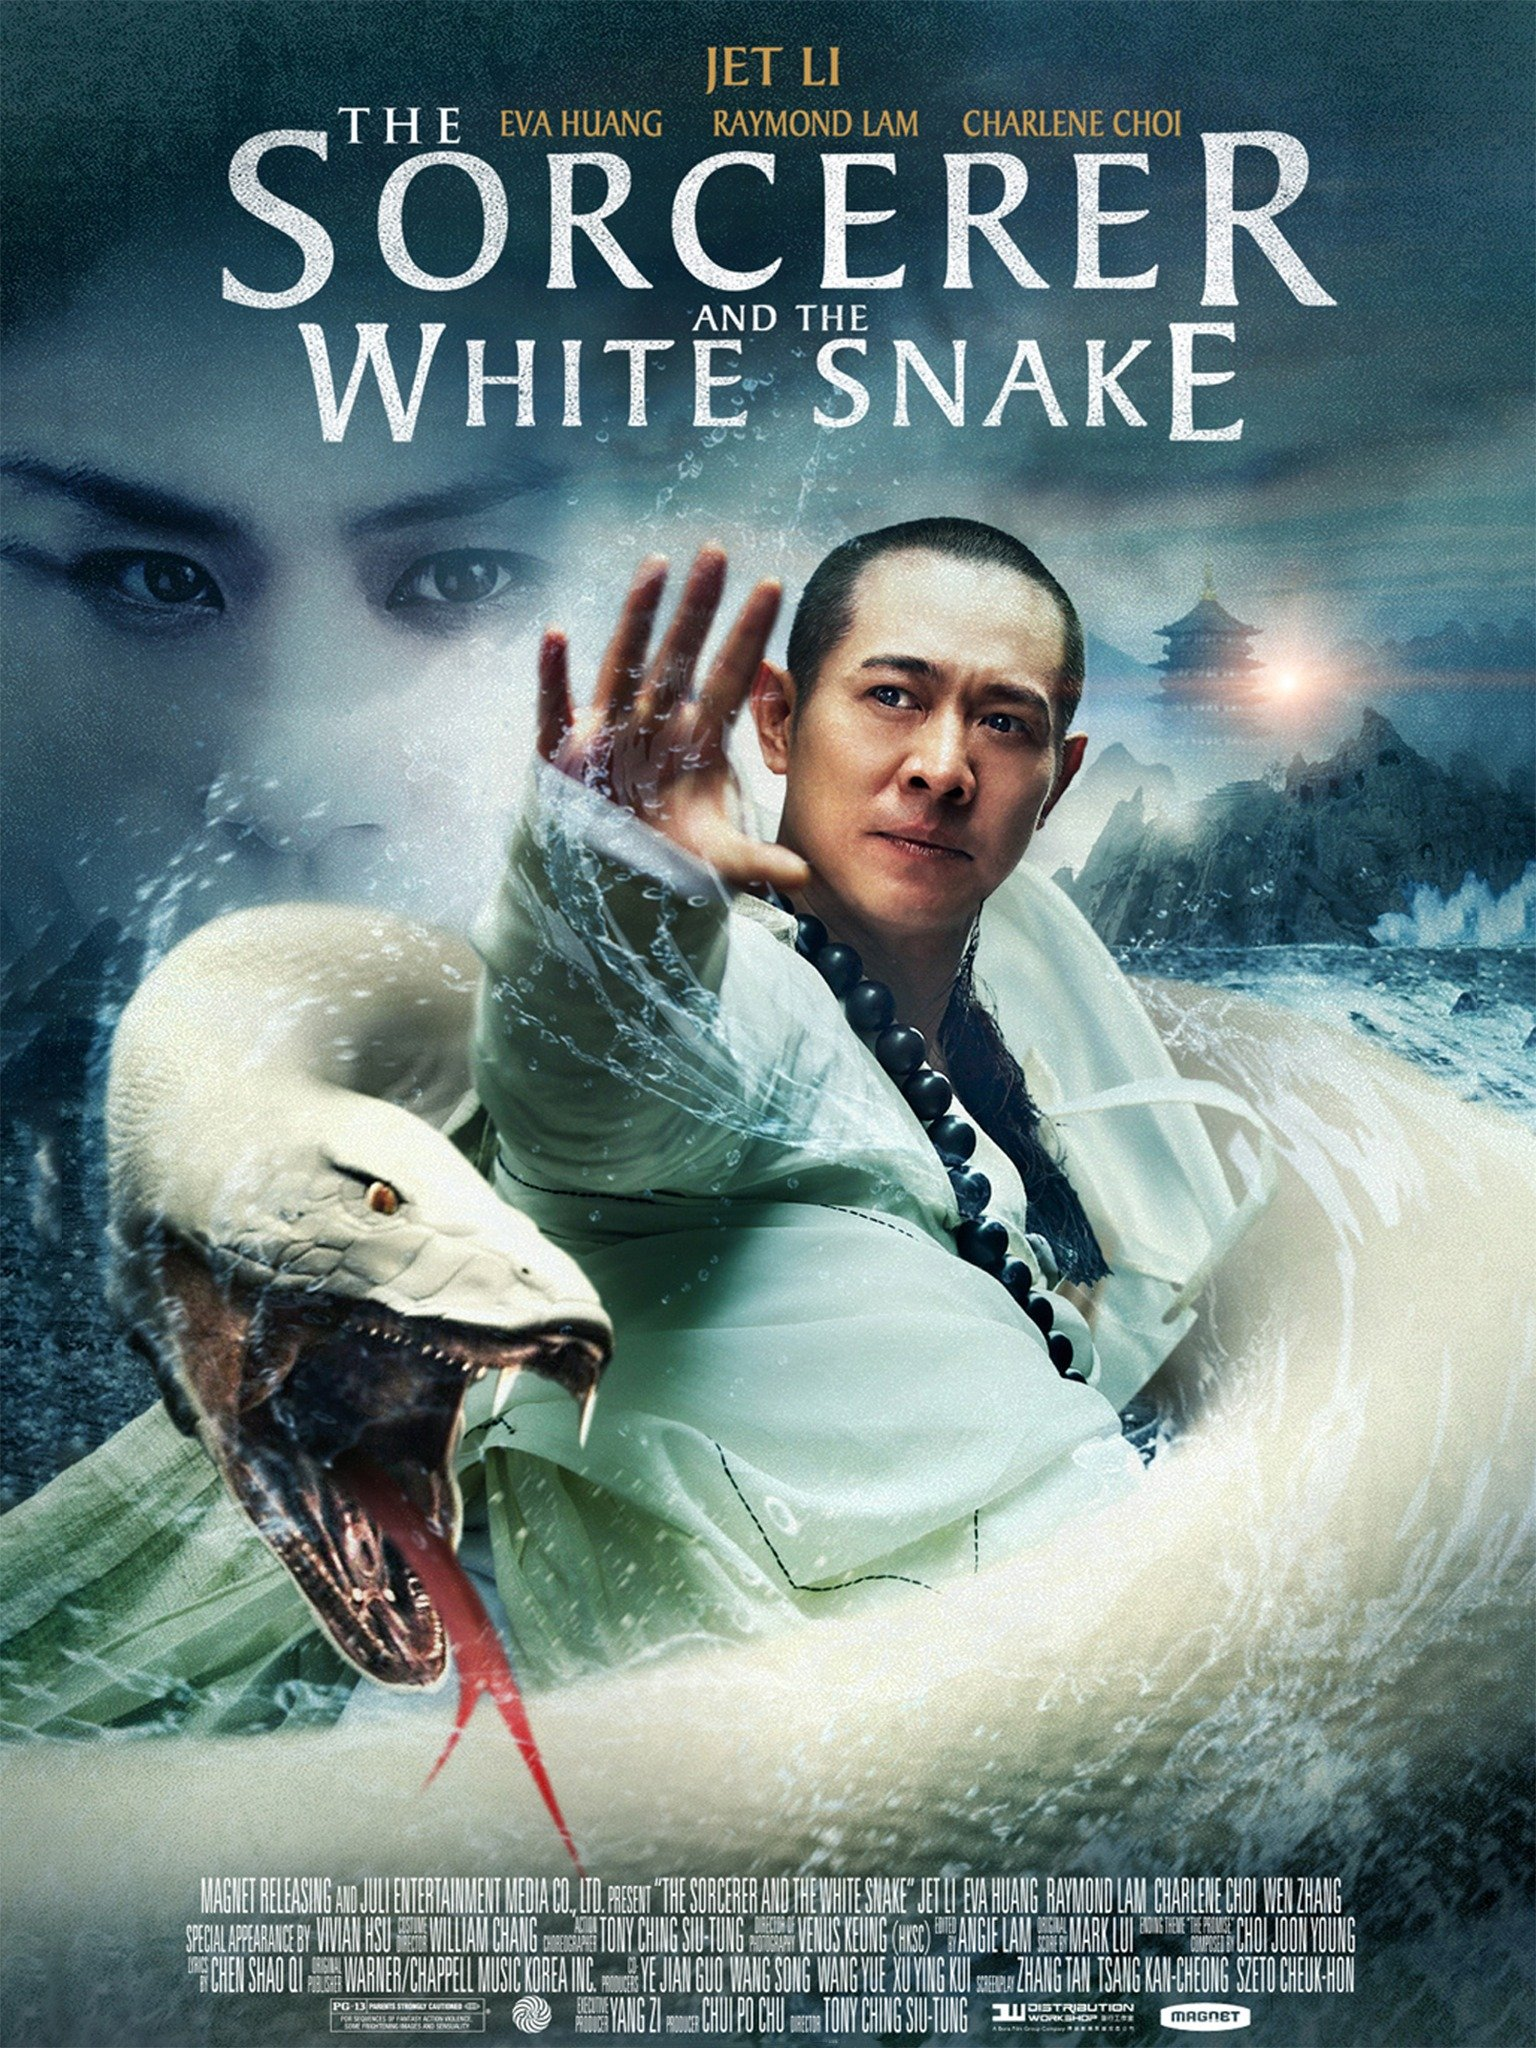 The Sorcerer and the White Snake (2011) Hindi Dubbed 720p HDRip Download